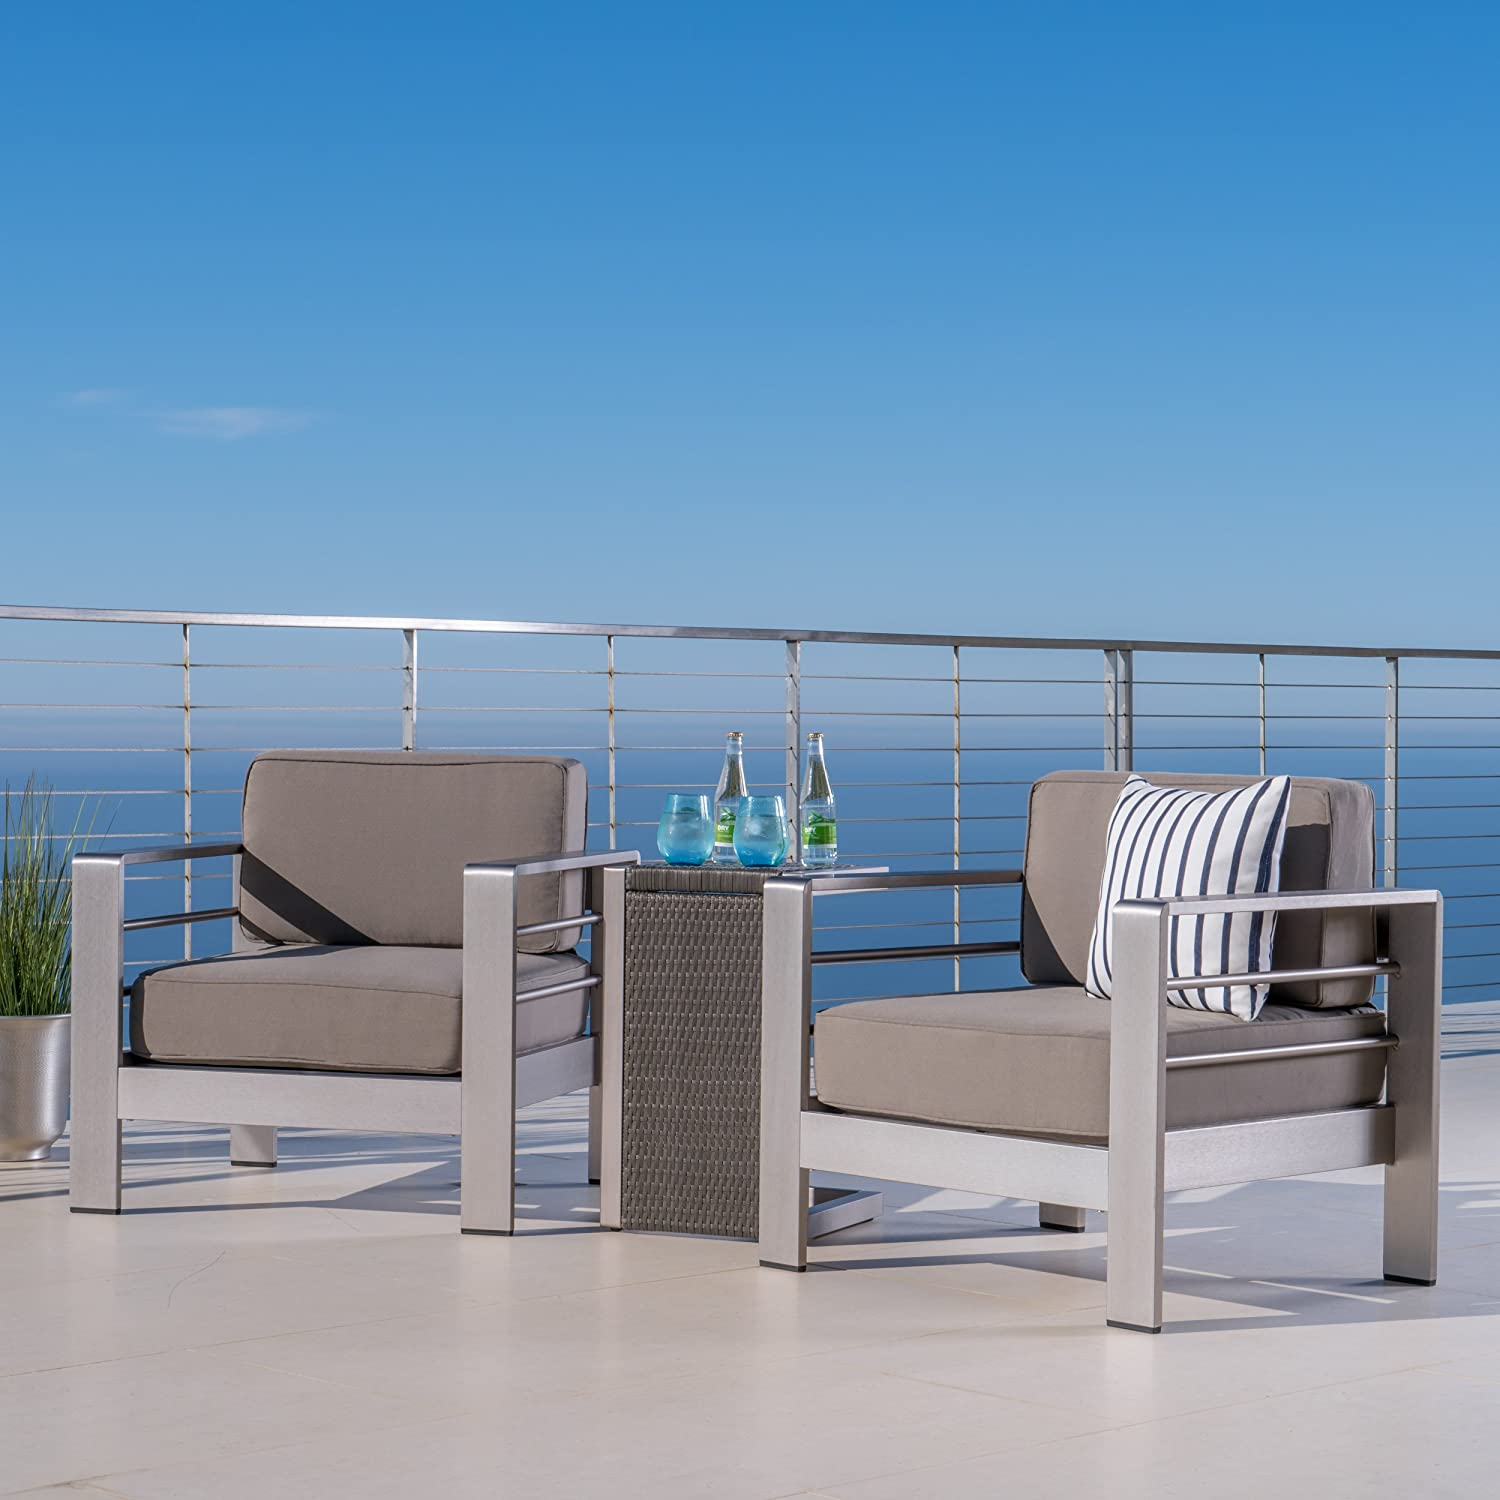 Crested Bay Patio Furniture ~ Outdoor Aluminum Patio Chairs with Side Table (Chat Set)(Khaki/Grey)